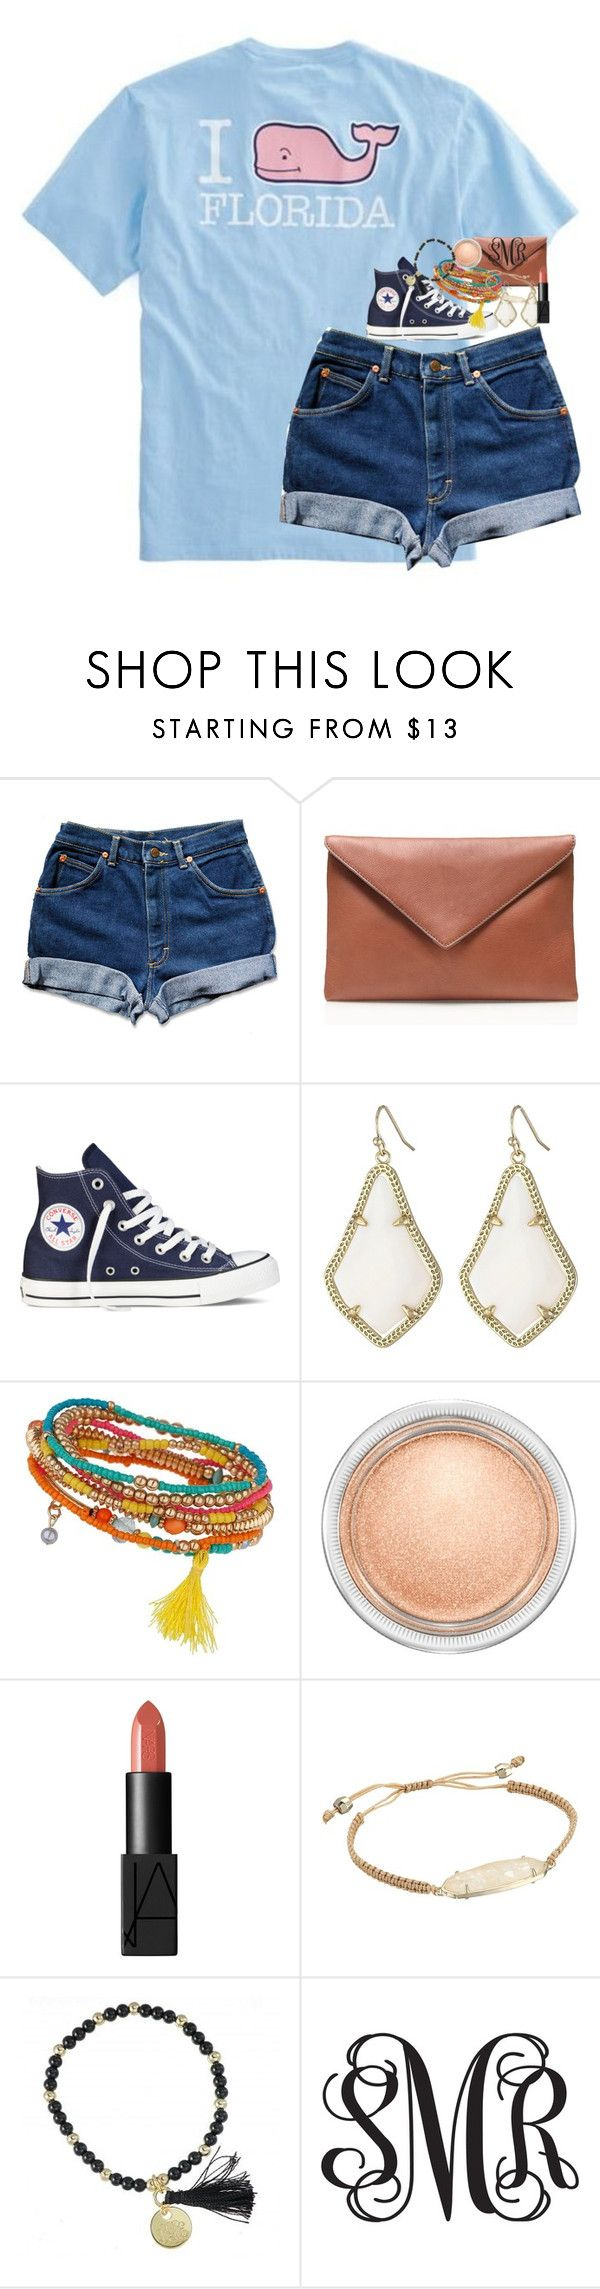 """this shirt would be perfect for the beach ☀️"" by classynsouthern ❤ liked on Polyvore featuring Vineyard Vines, J.Crew, Converse, Kendra Scott, Miss Selfridge, MAC Cosmetics and NARS Cosmetics"